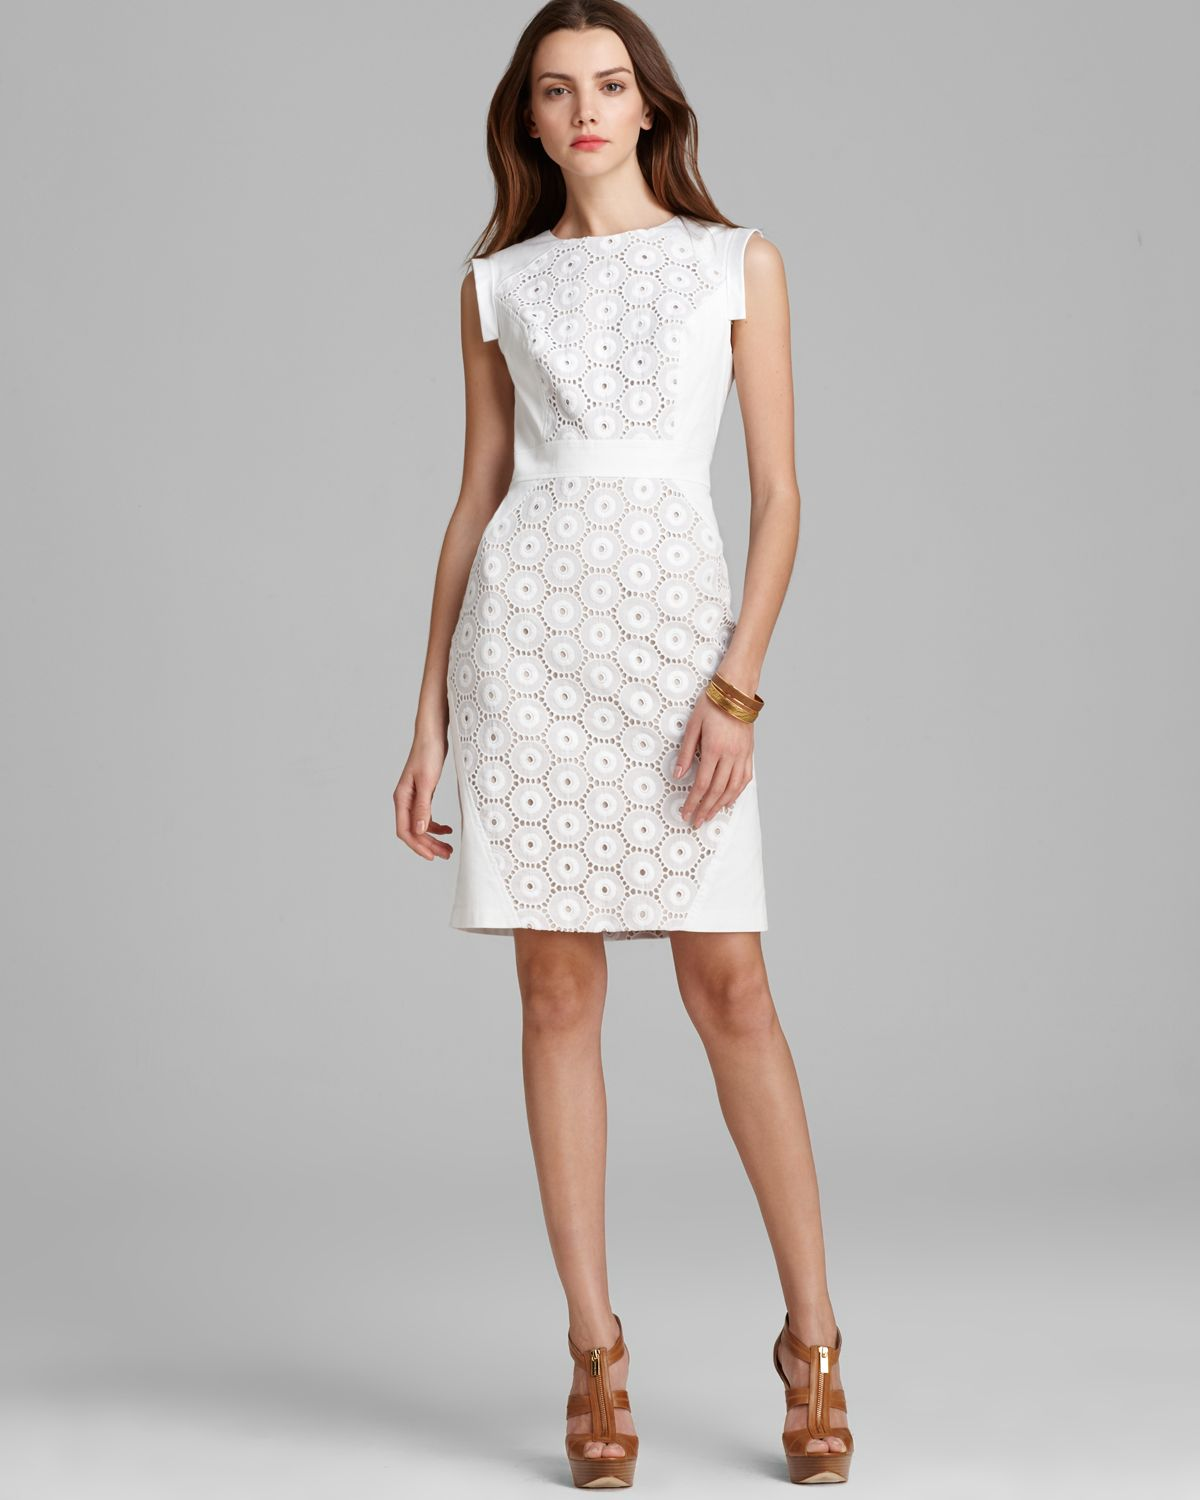 Adrianna papell Sheath Dress Sleeveless Eyelet Panel in White | Lyst